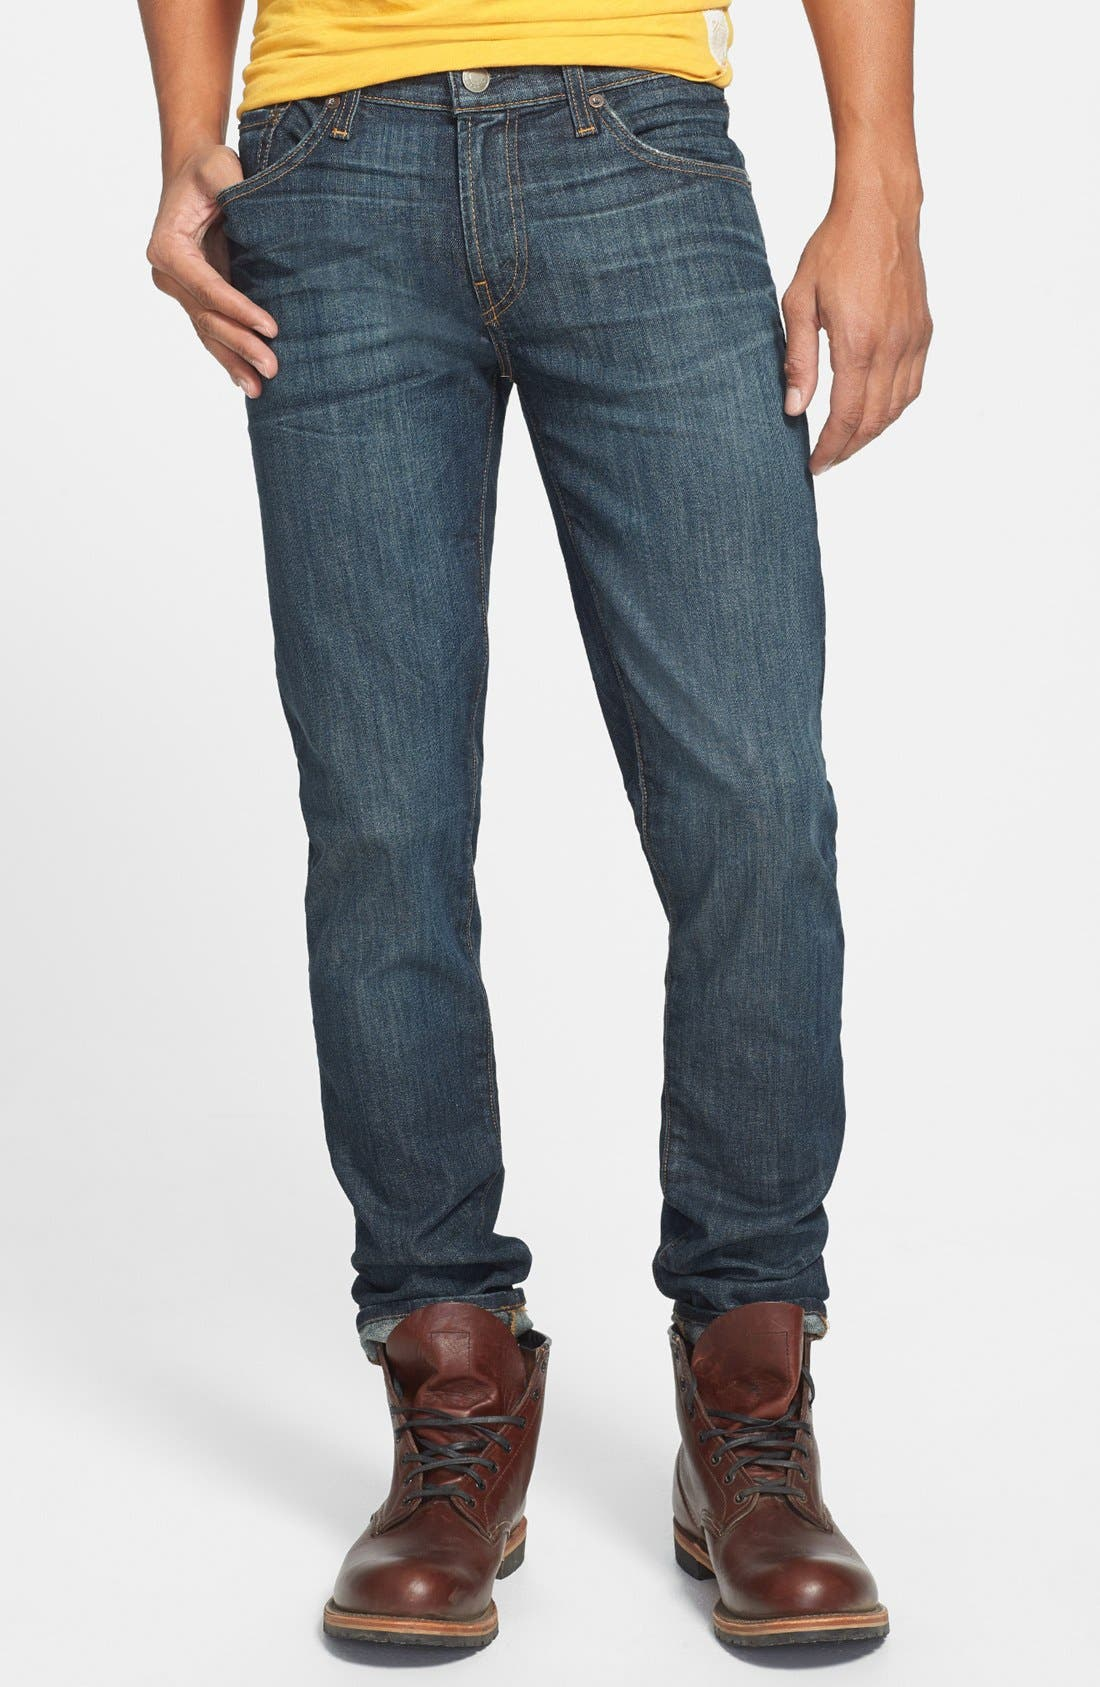 Alternate Image 1 Selected - J Brand Skinny Fit Selvedge Jeans (Theorem)